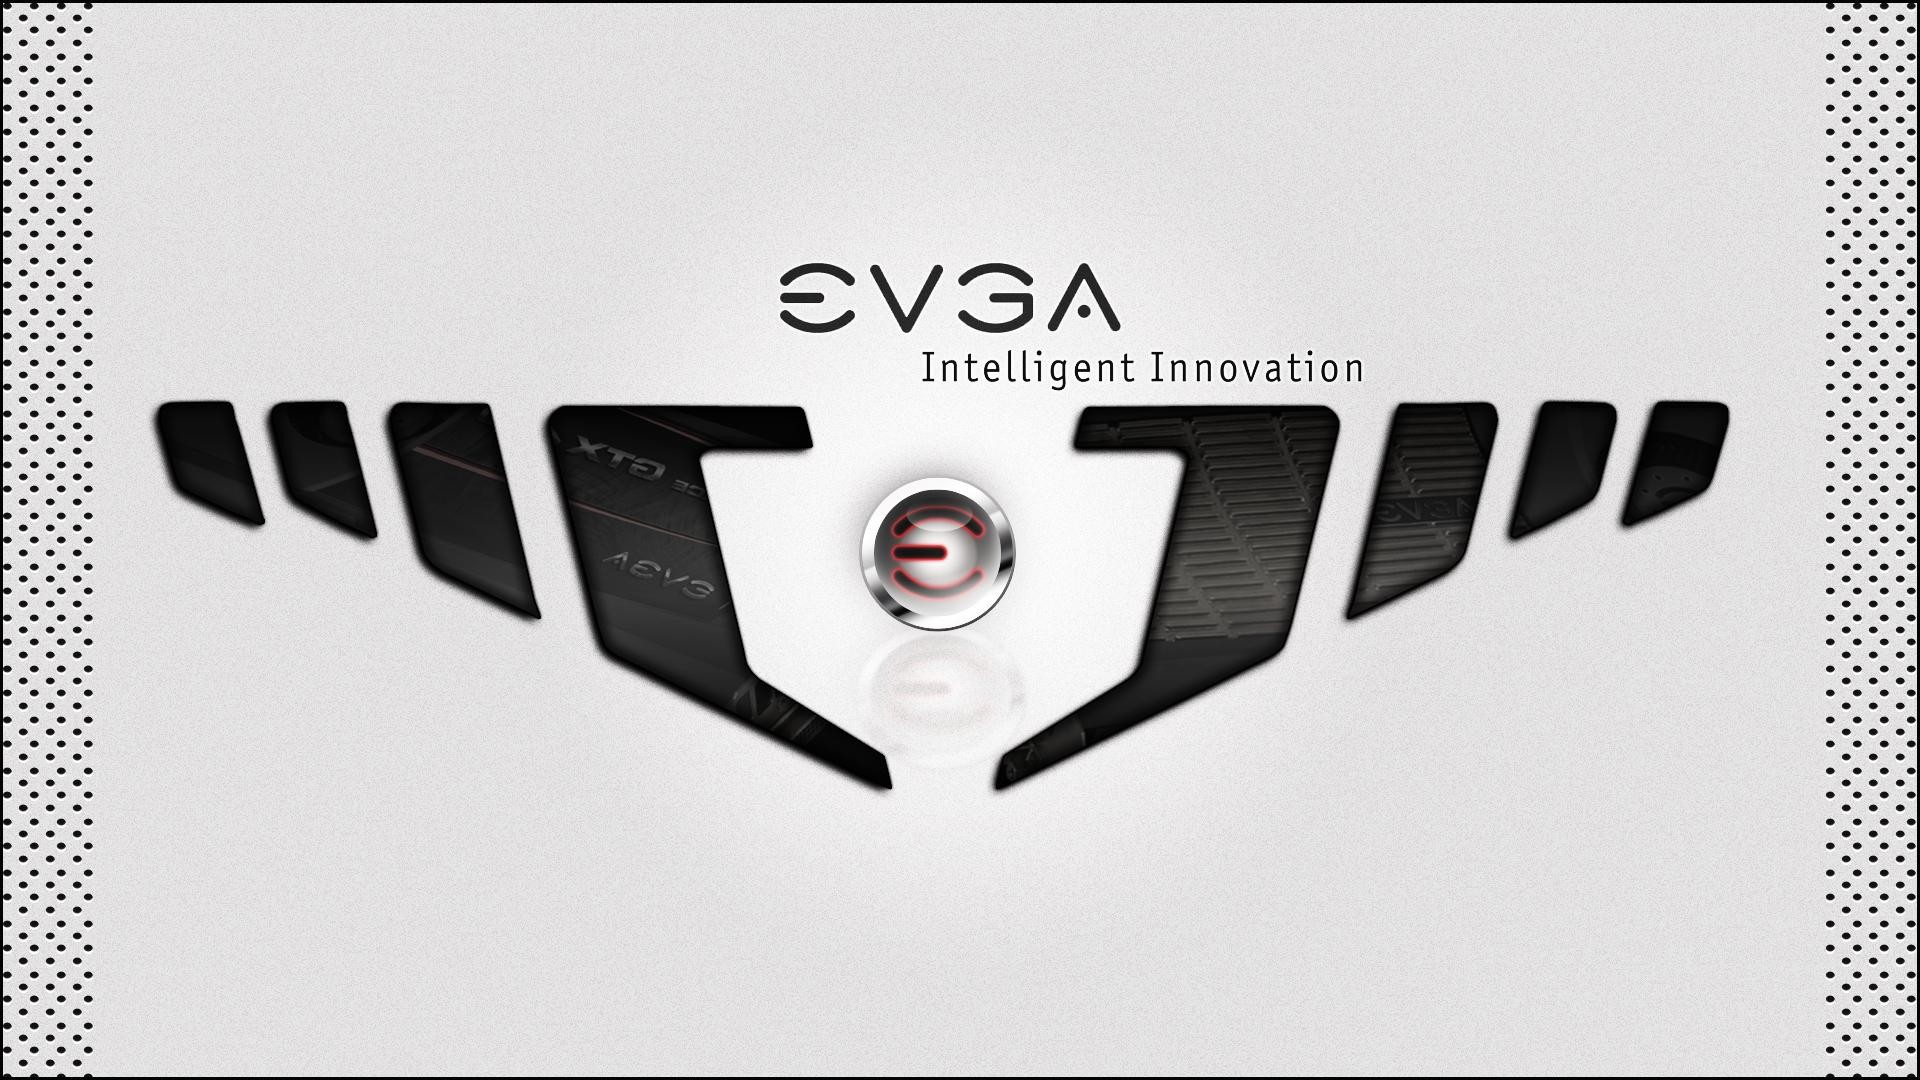 1920x1080 Cool Collections of Evga Wallpapers HD For Desktop, Laptop and Mobiles.  Here You Can Download More than 5 Million Photography collections Uploaded  By Users.